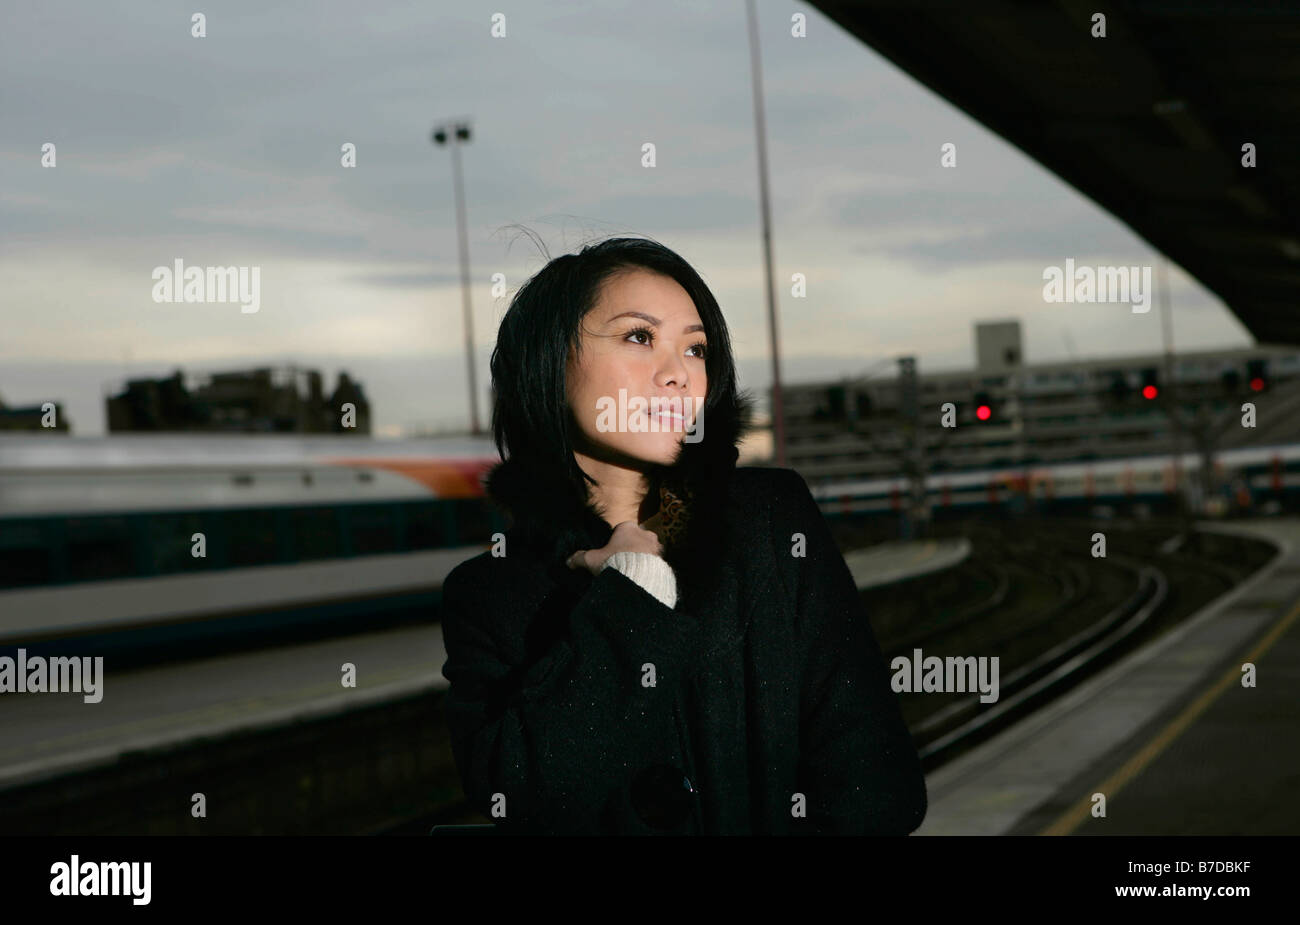 Woman on train platform - Stock Image